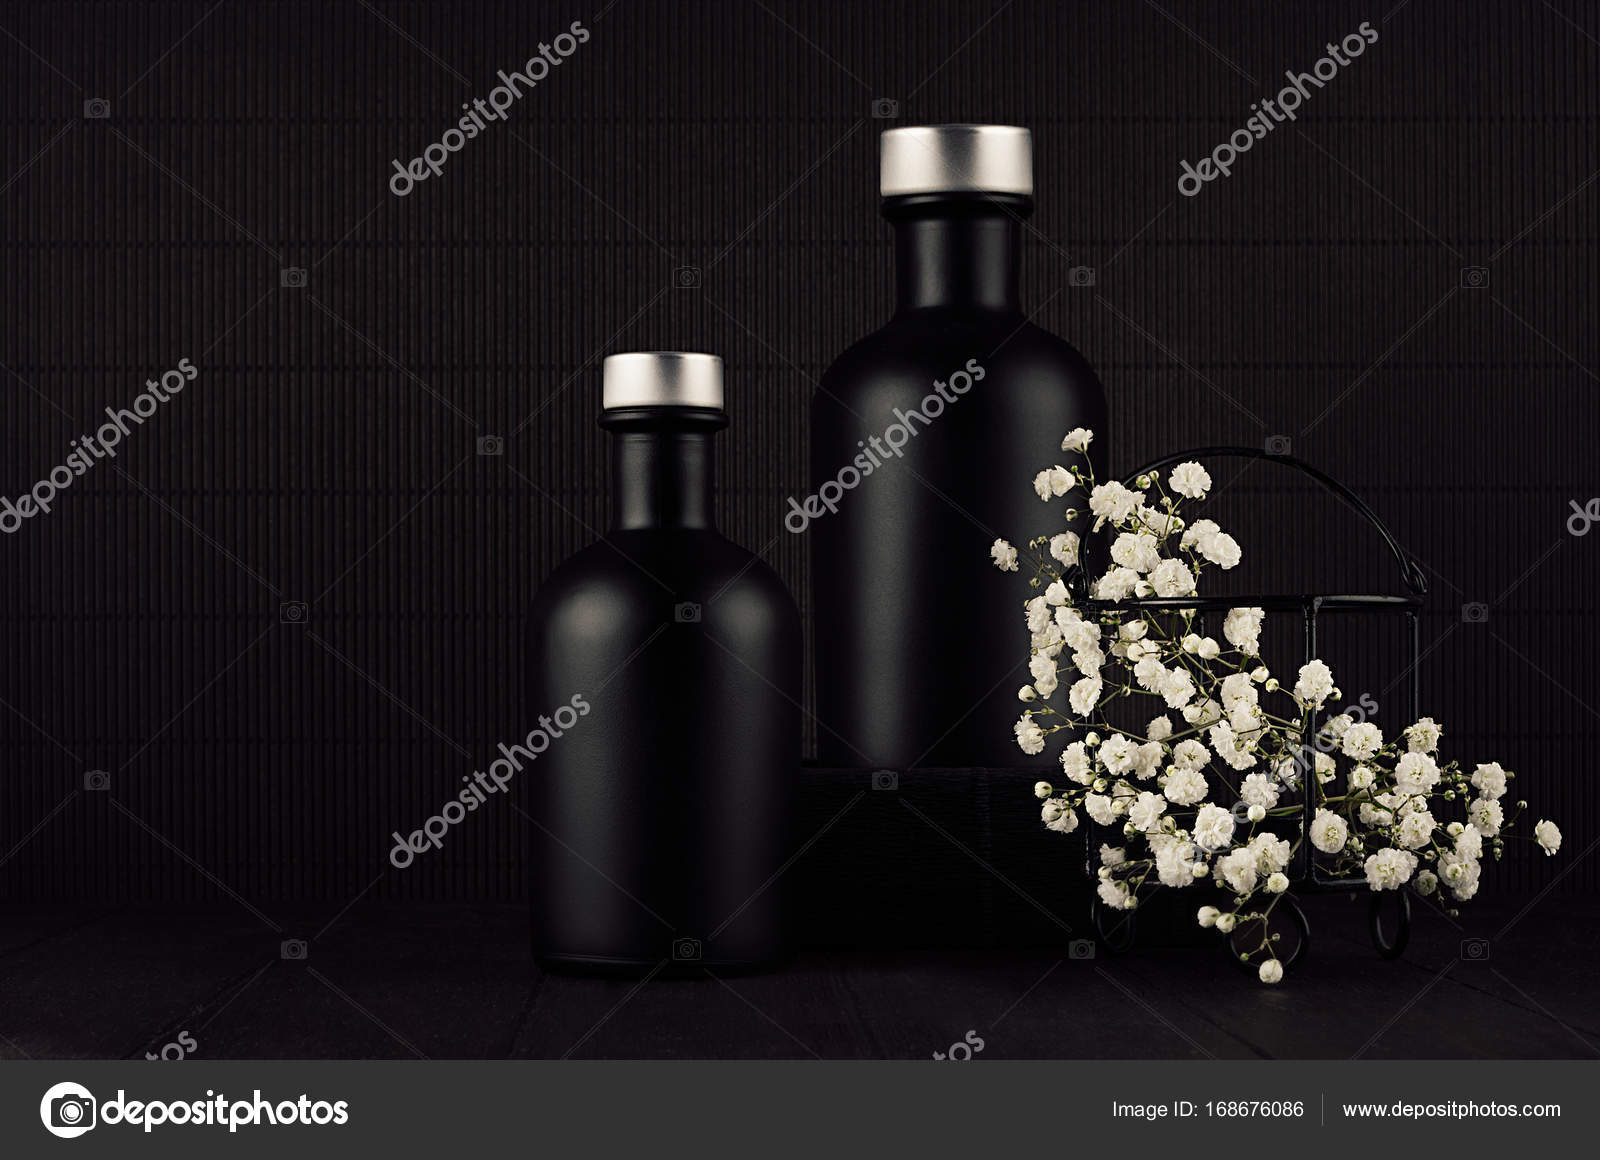 Noir Exquisite Home Decor With Blank Black Cosmetics Bottles White Small Flowers On Dark Wood